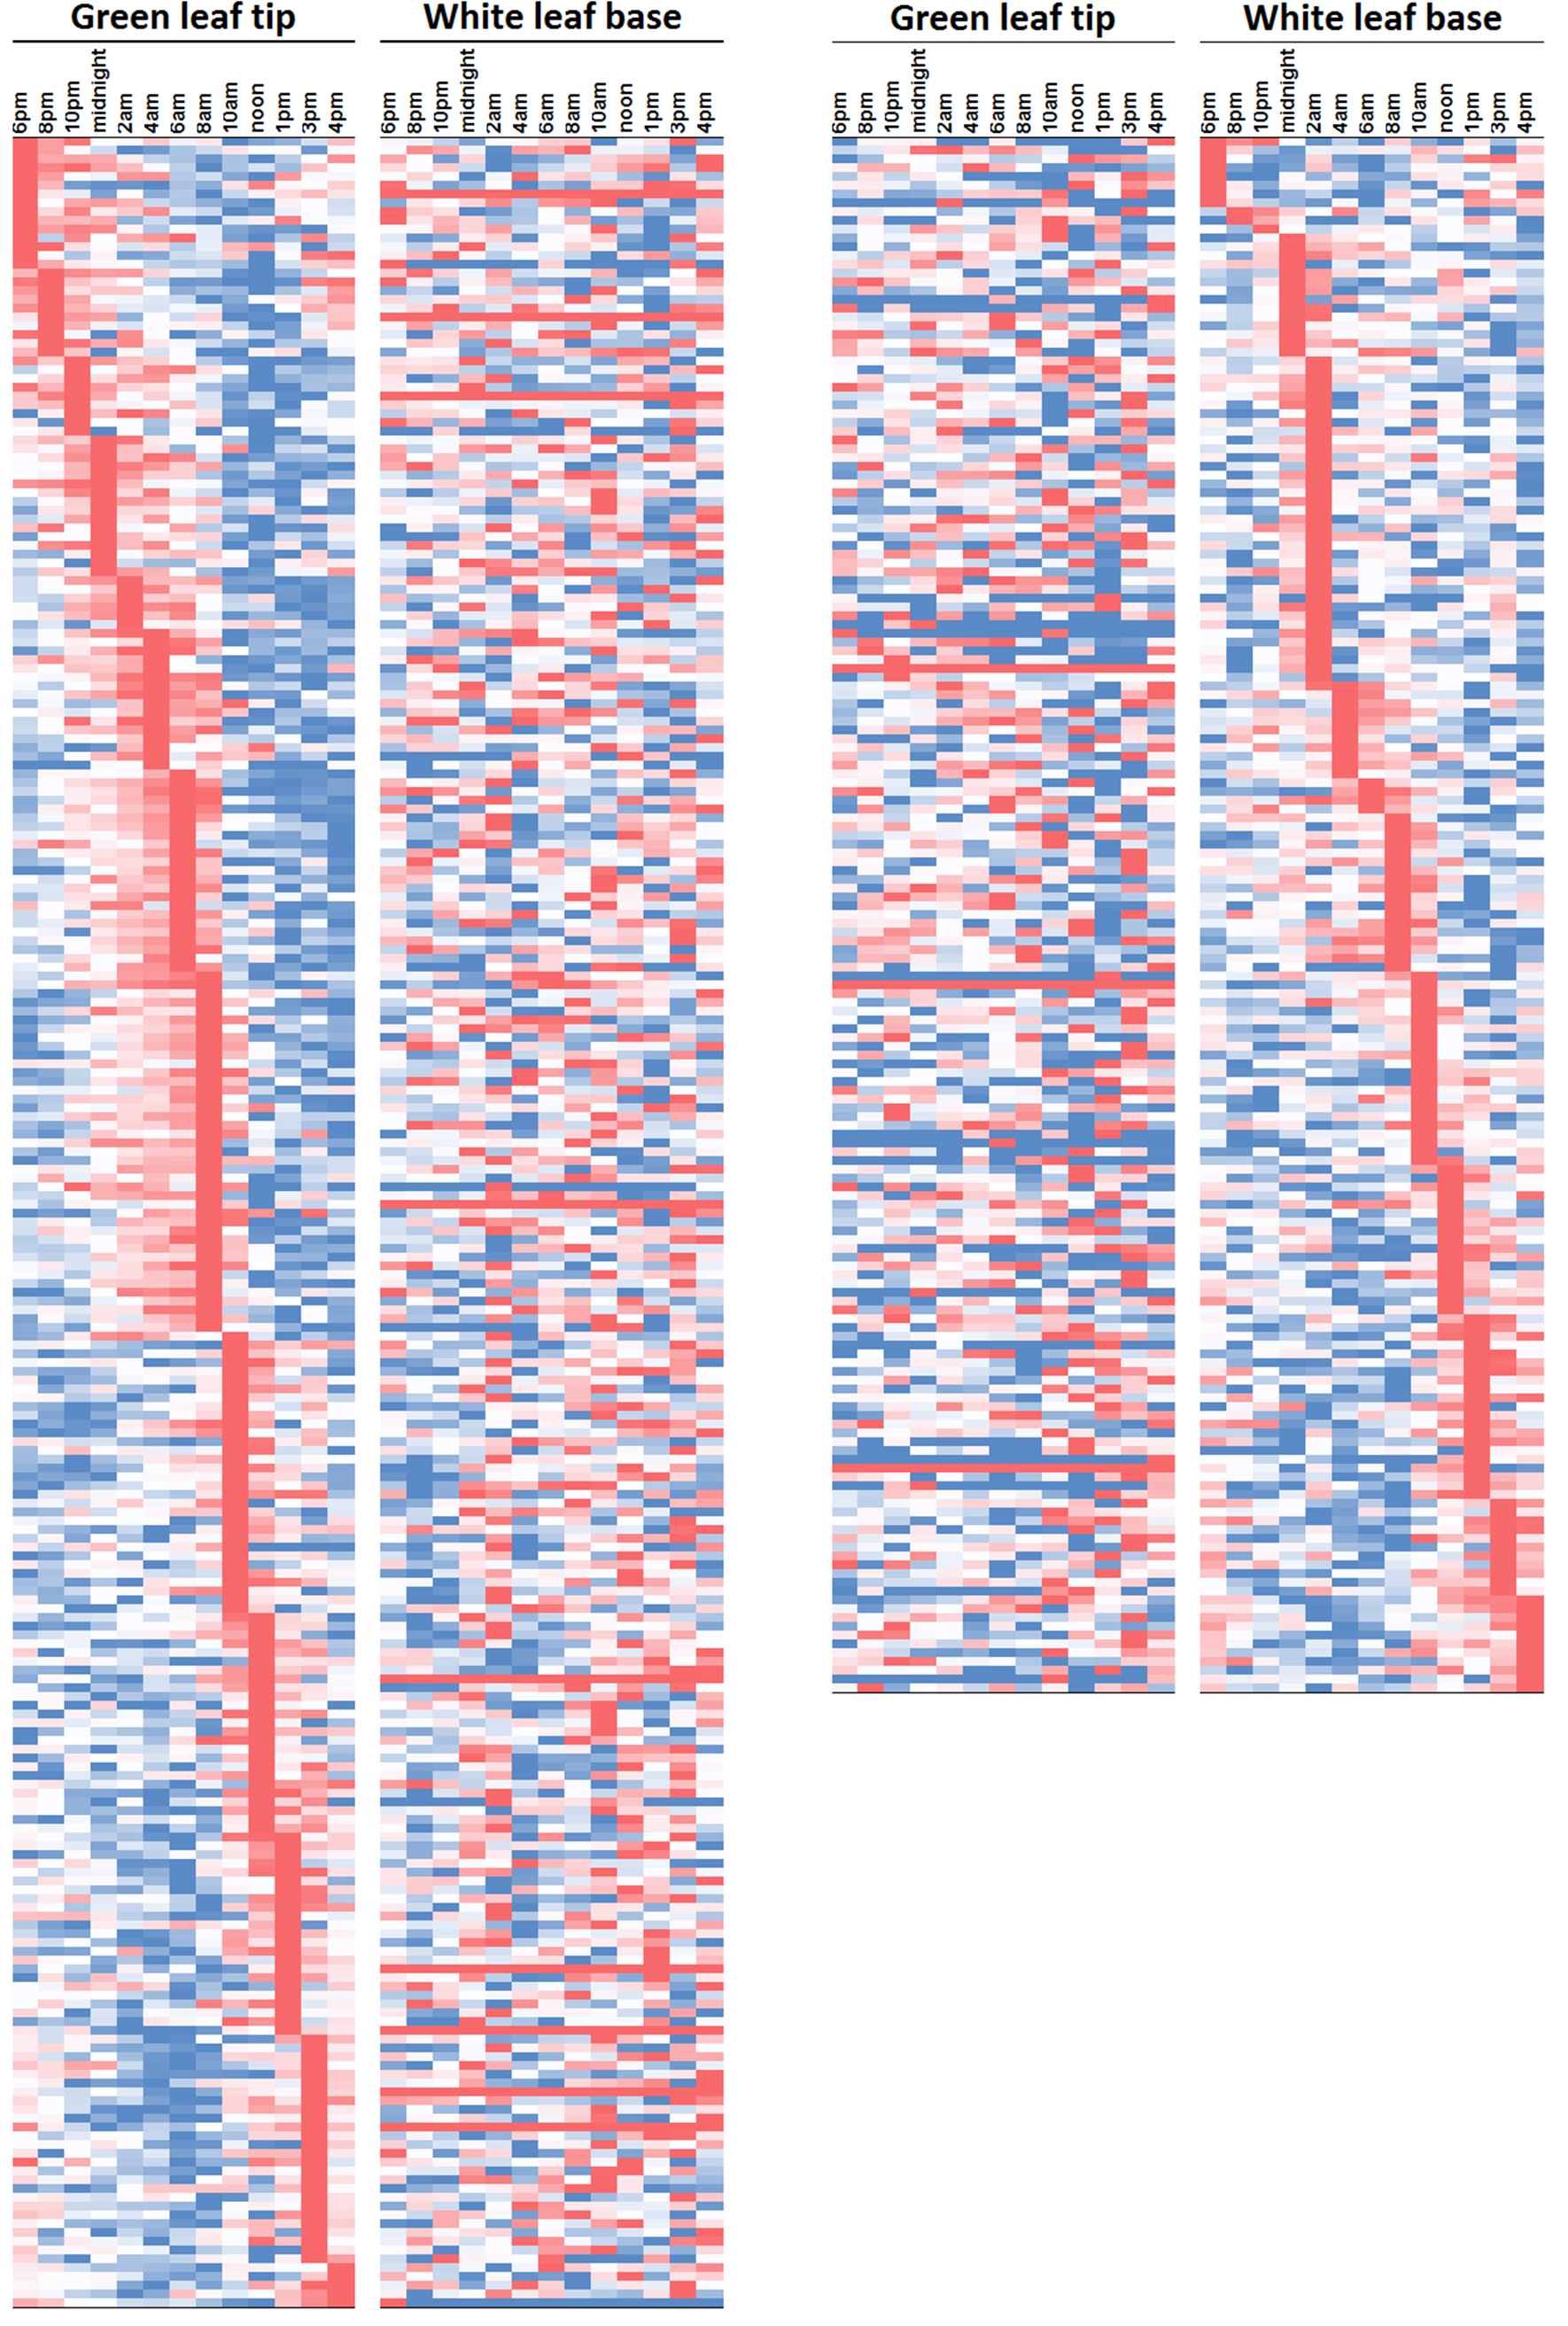 graph showing diurnal gene expression patterns